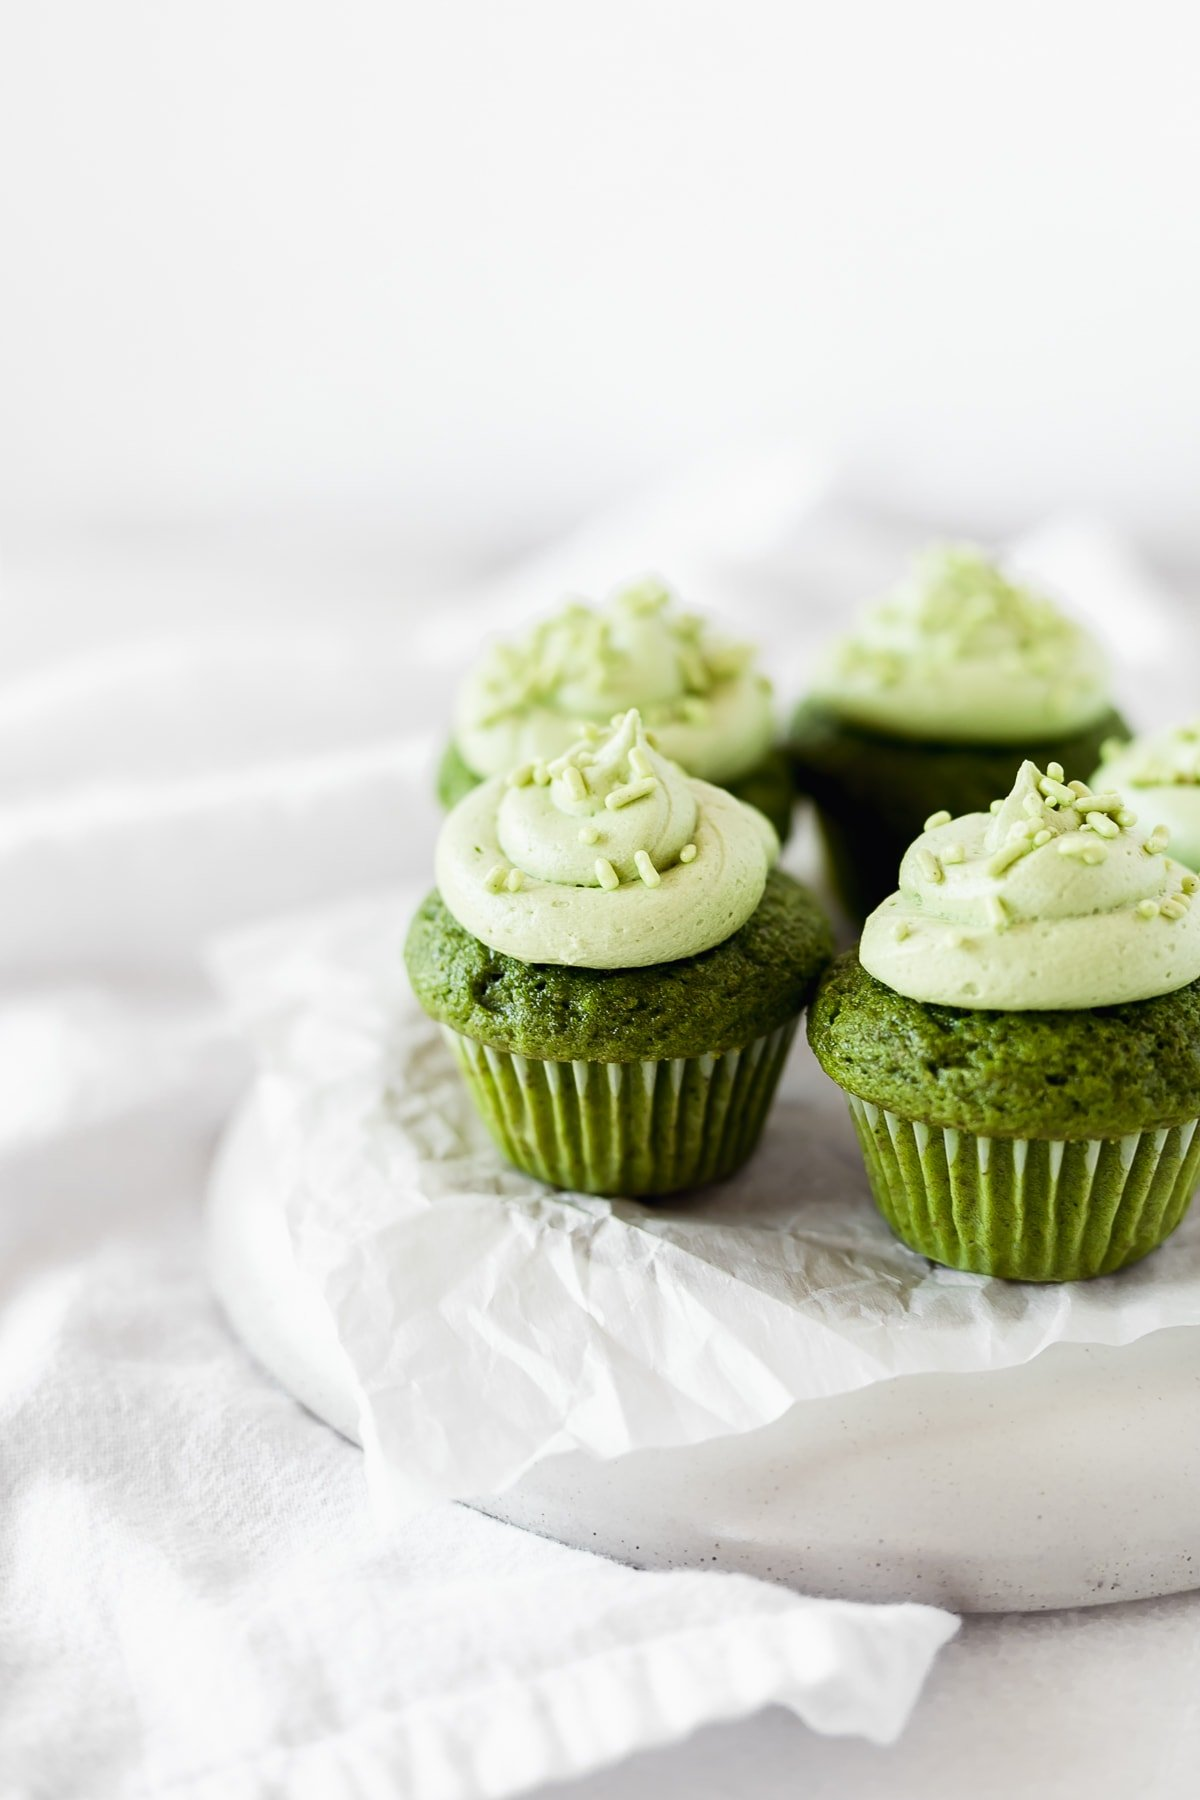 Mini Matcha Green Tea Cupcakes are loaded with antioxidant-rich matcha for a delicious and adorable springtime treat! via livelytable.com